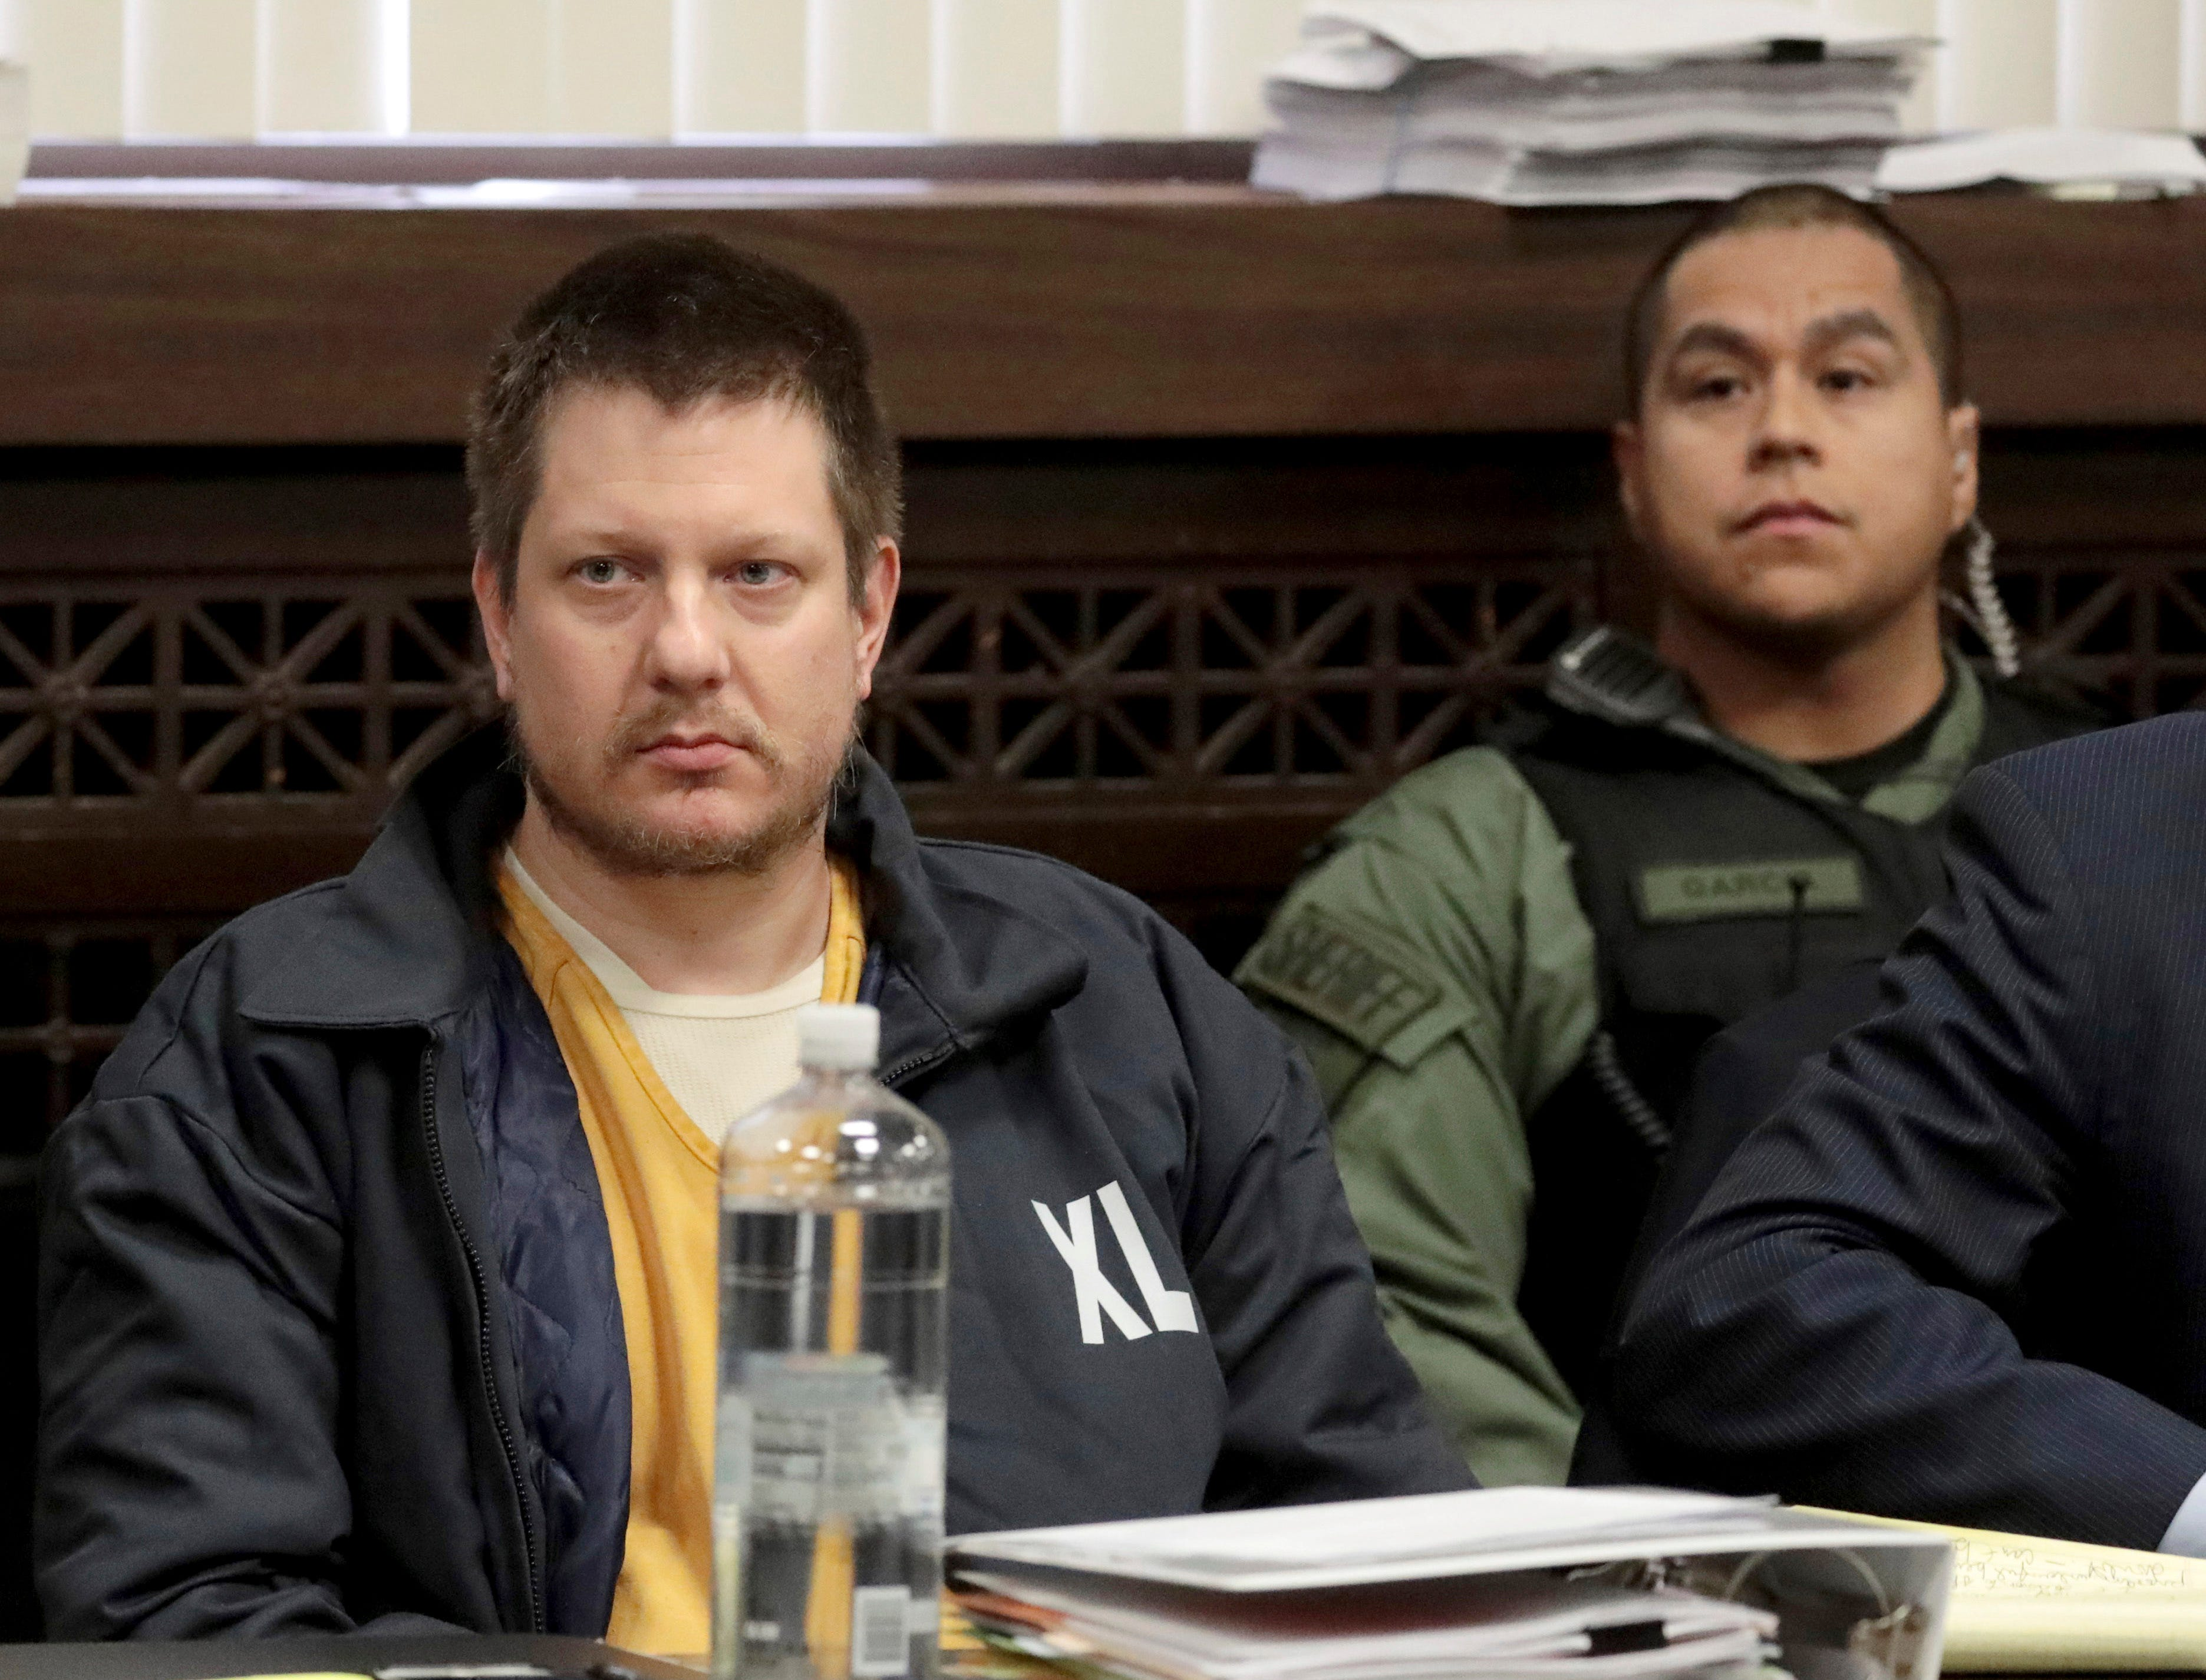 Jason Van Dyke, the ex-Chicago cop who murdered Laquan McDonald, was beaten in his cell by inmates, lawyers say